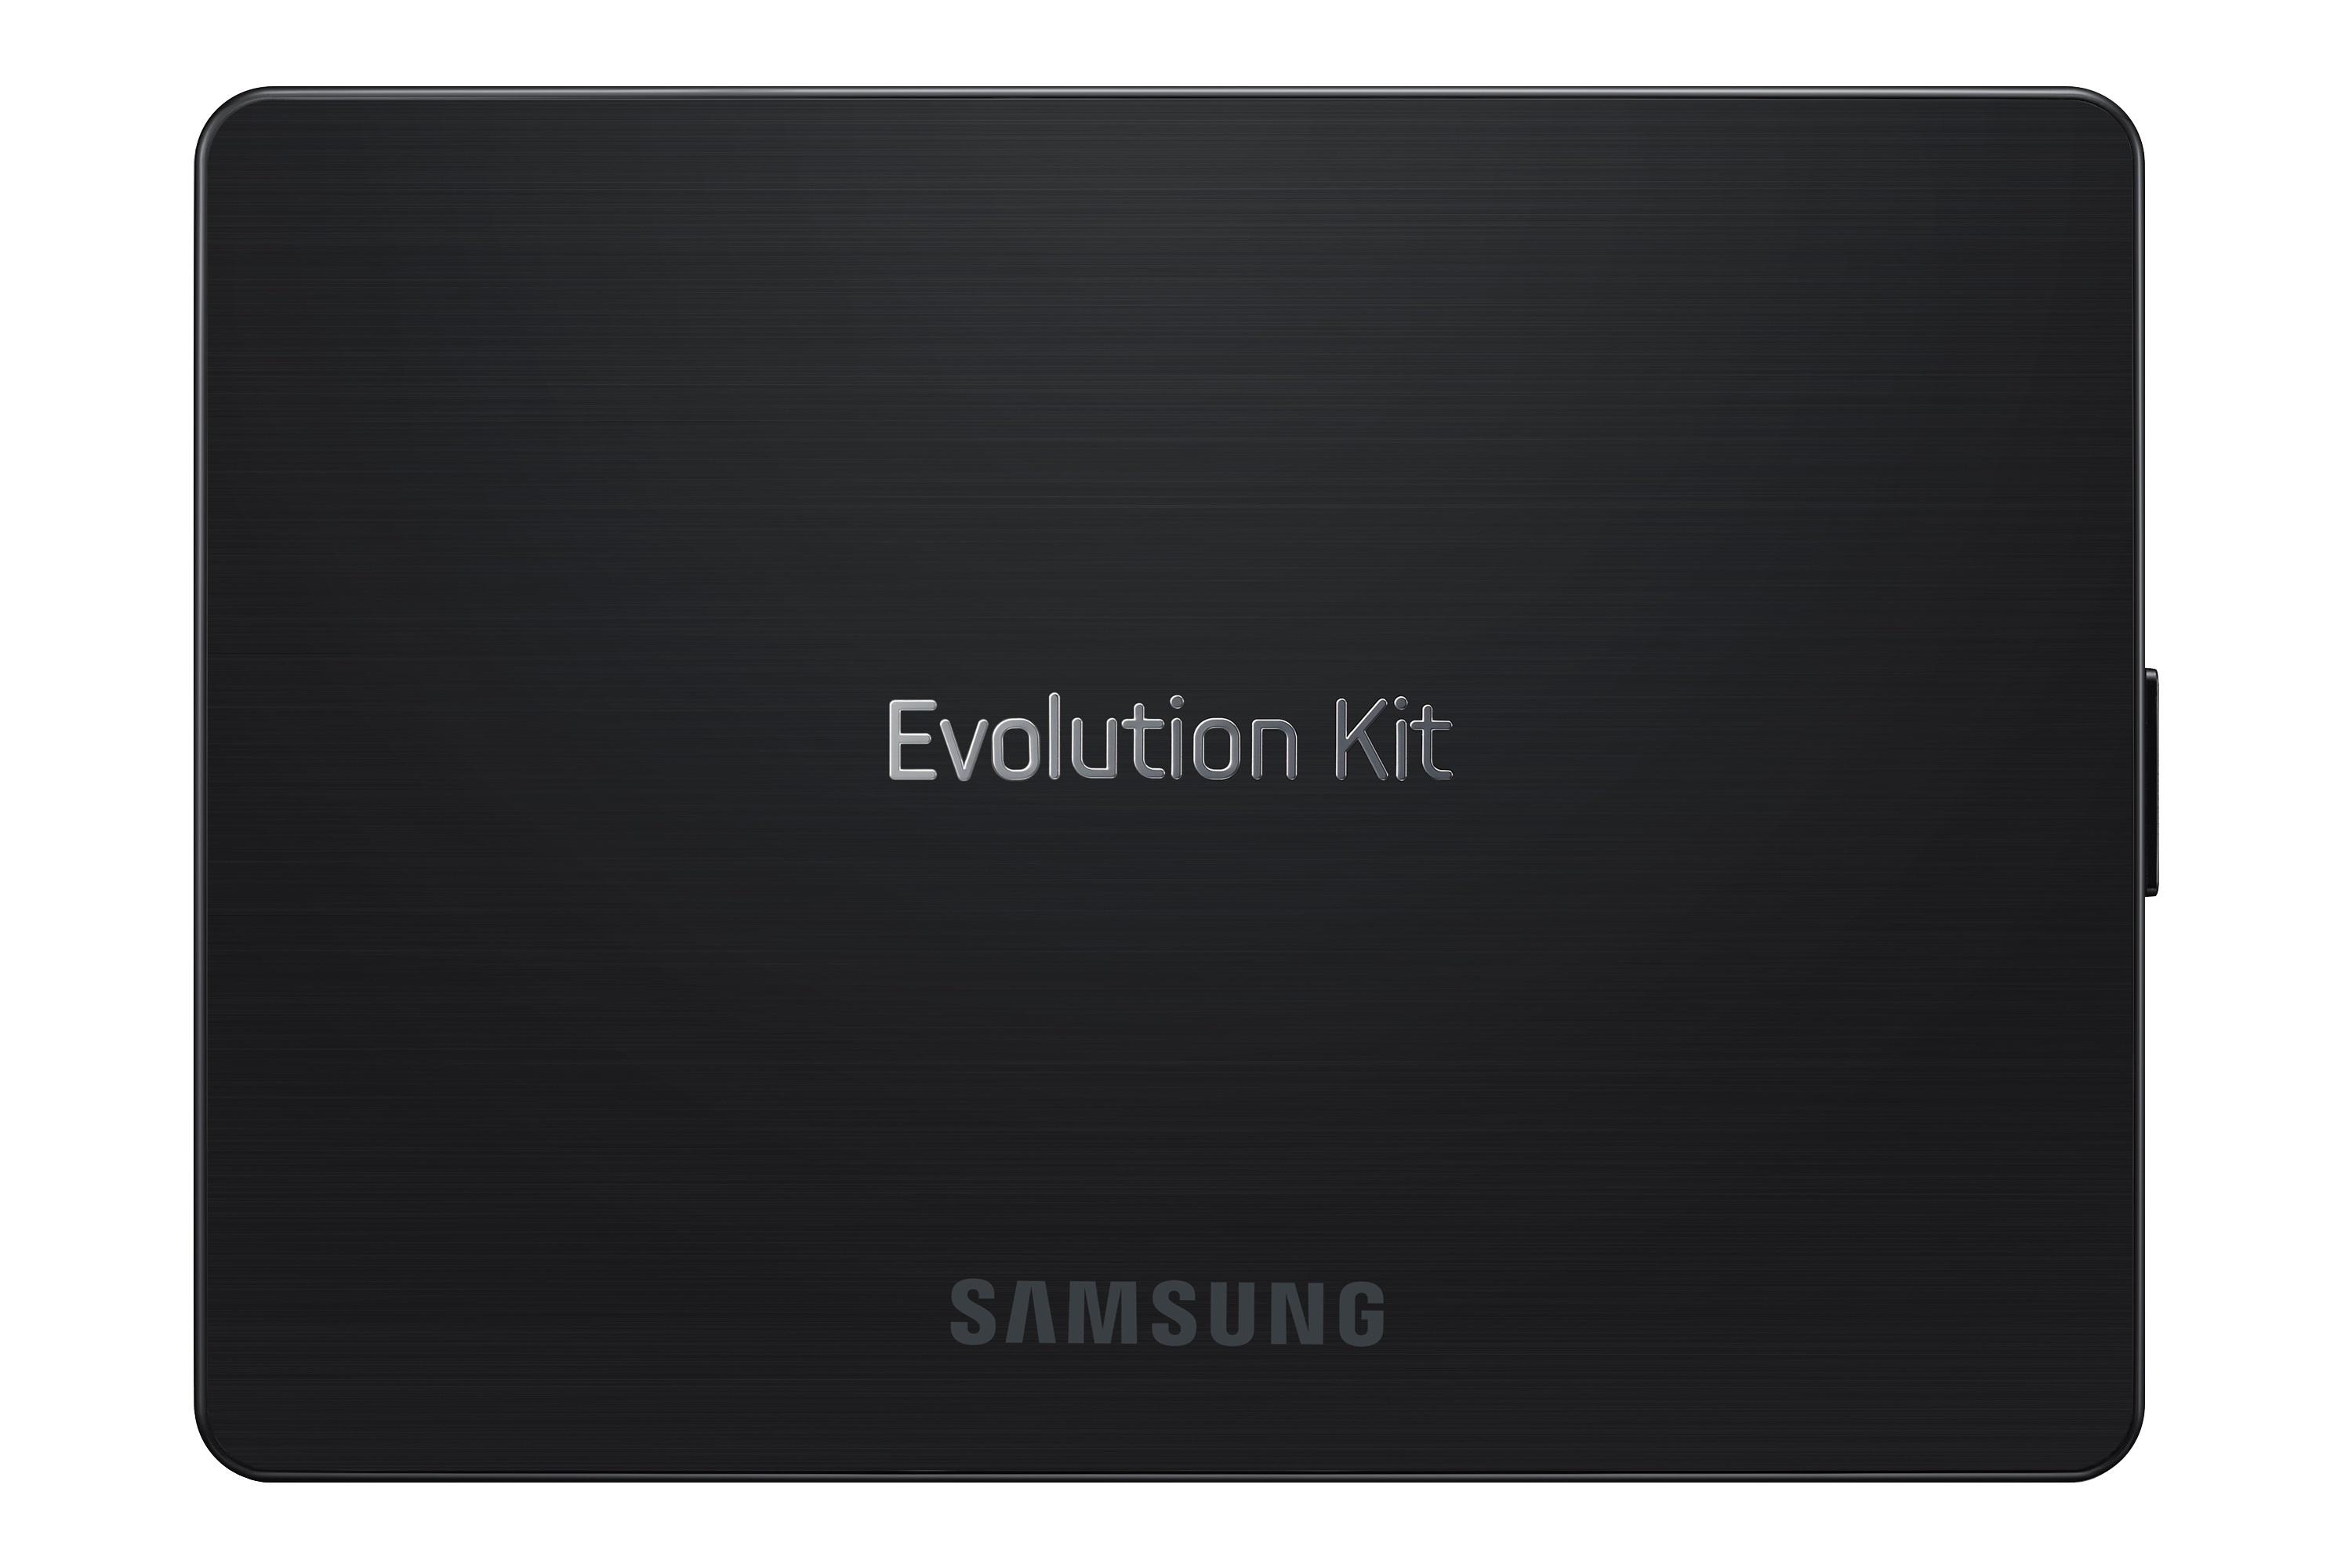 Evolution Kit